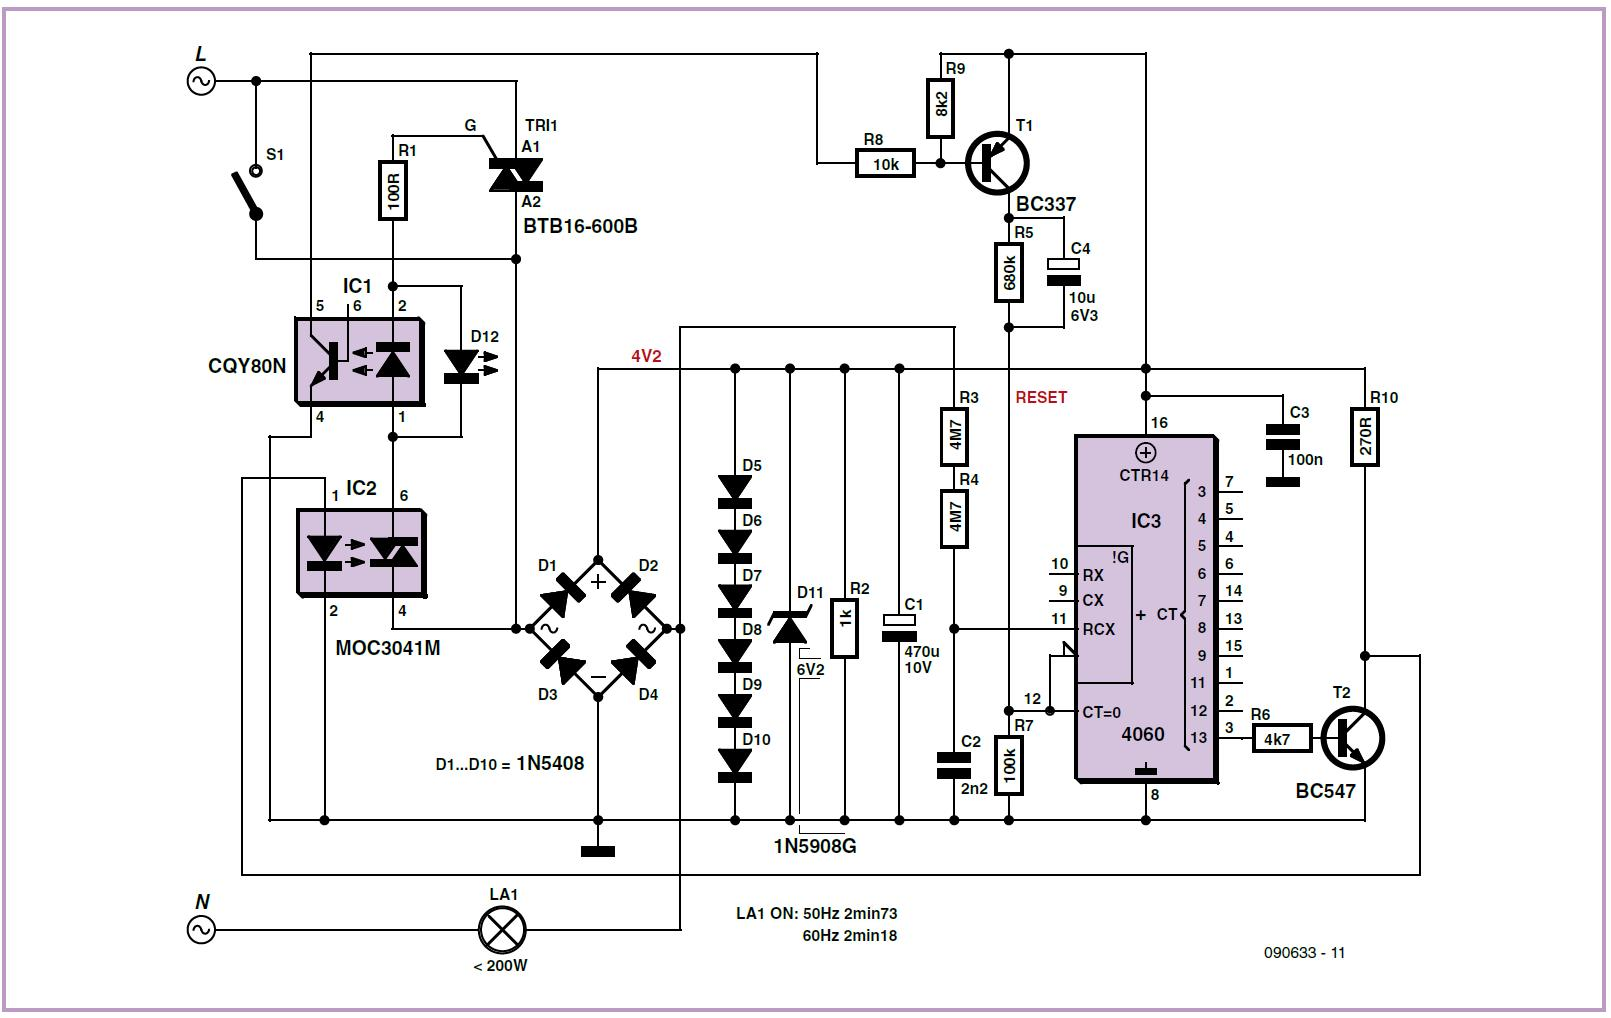 Sony Cdx Fw570 Wiring Diagram